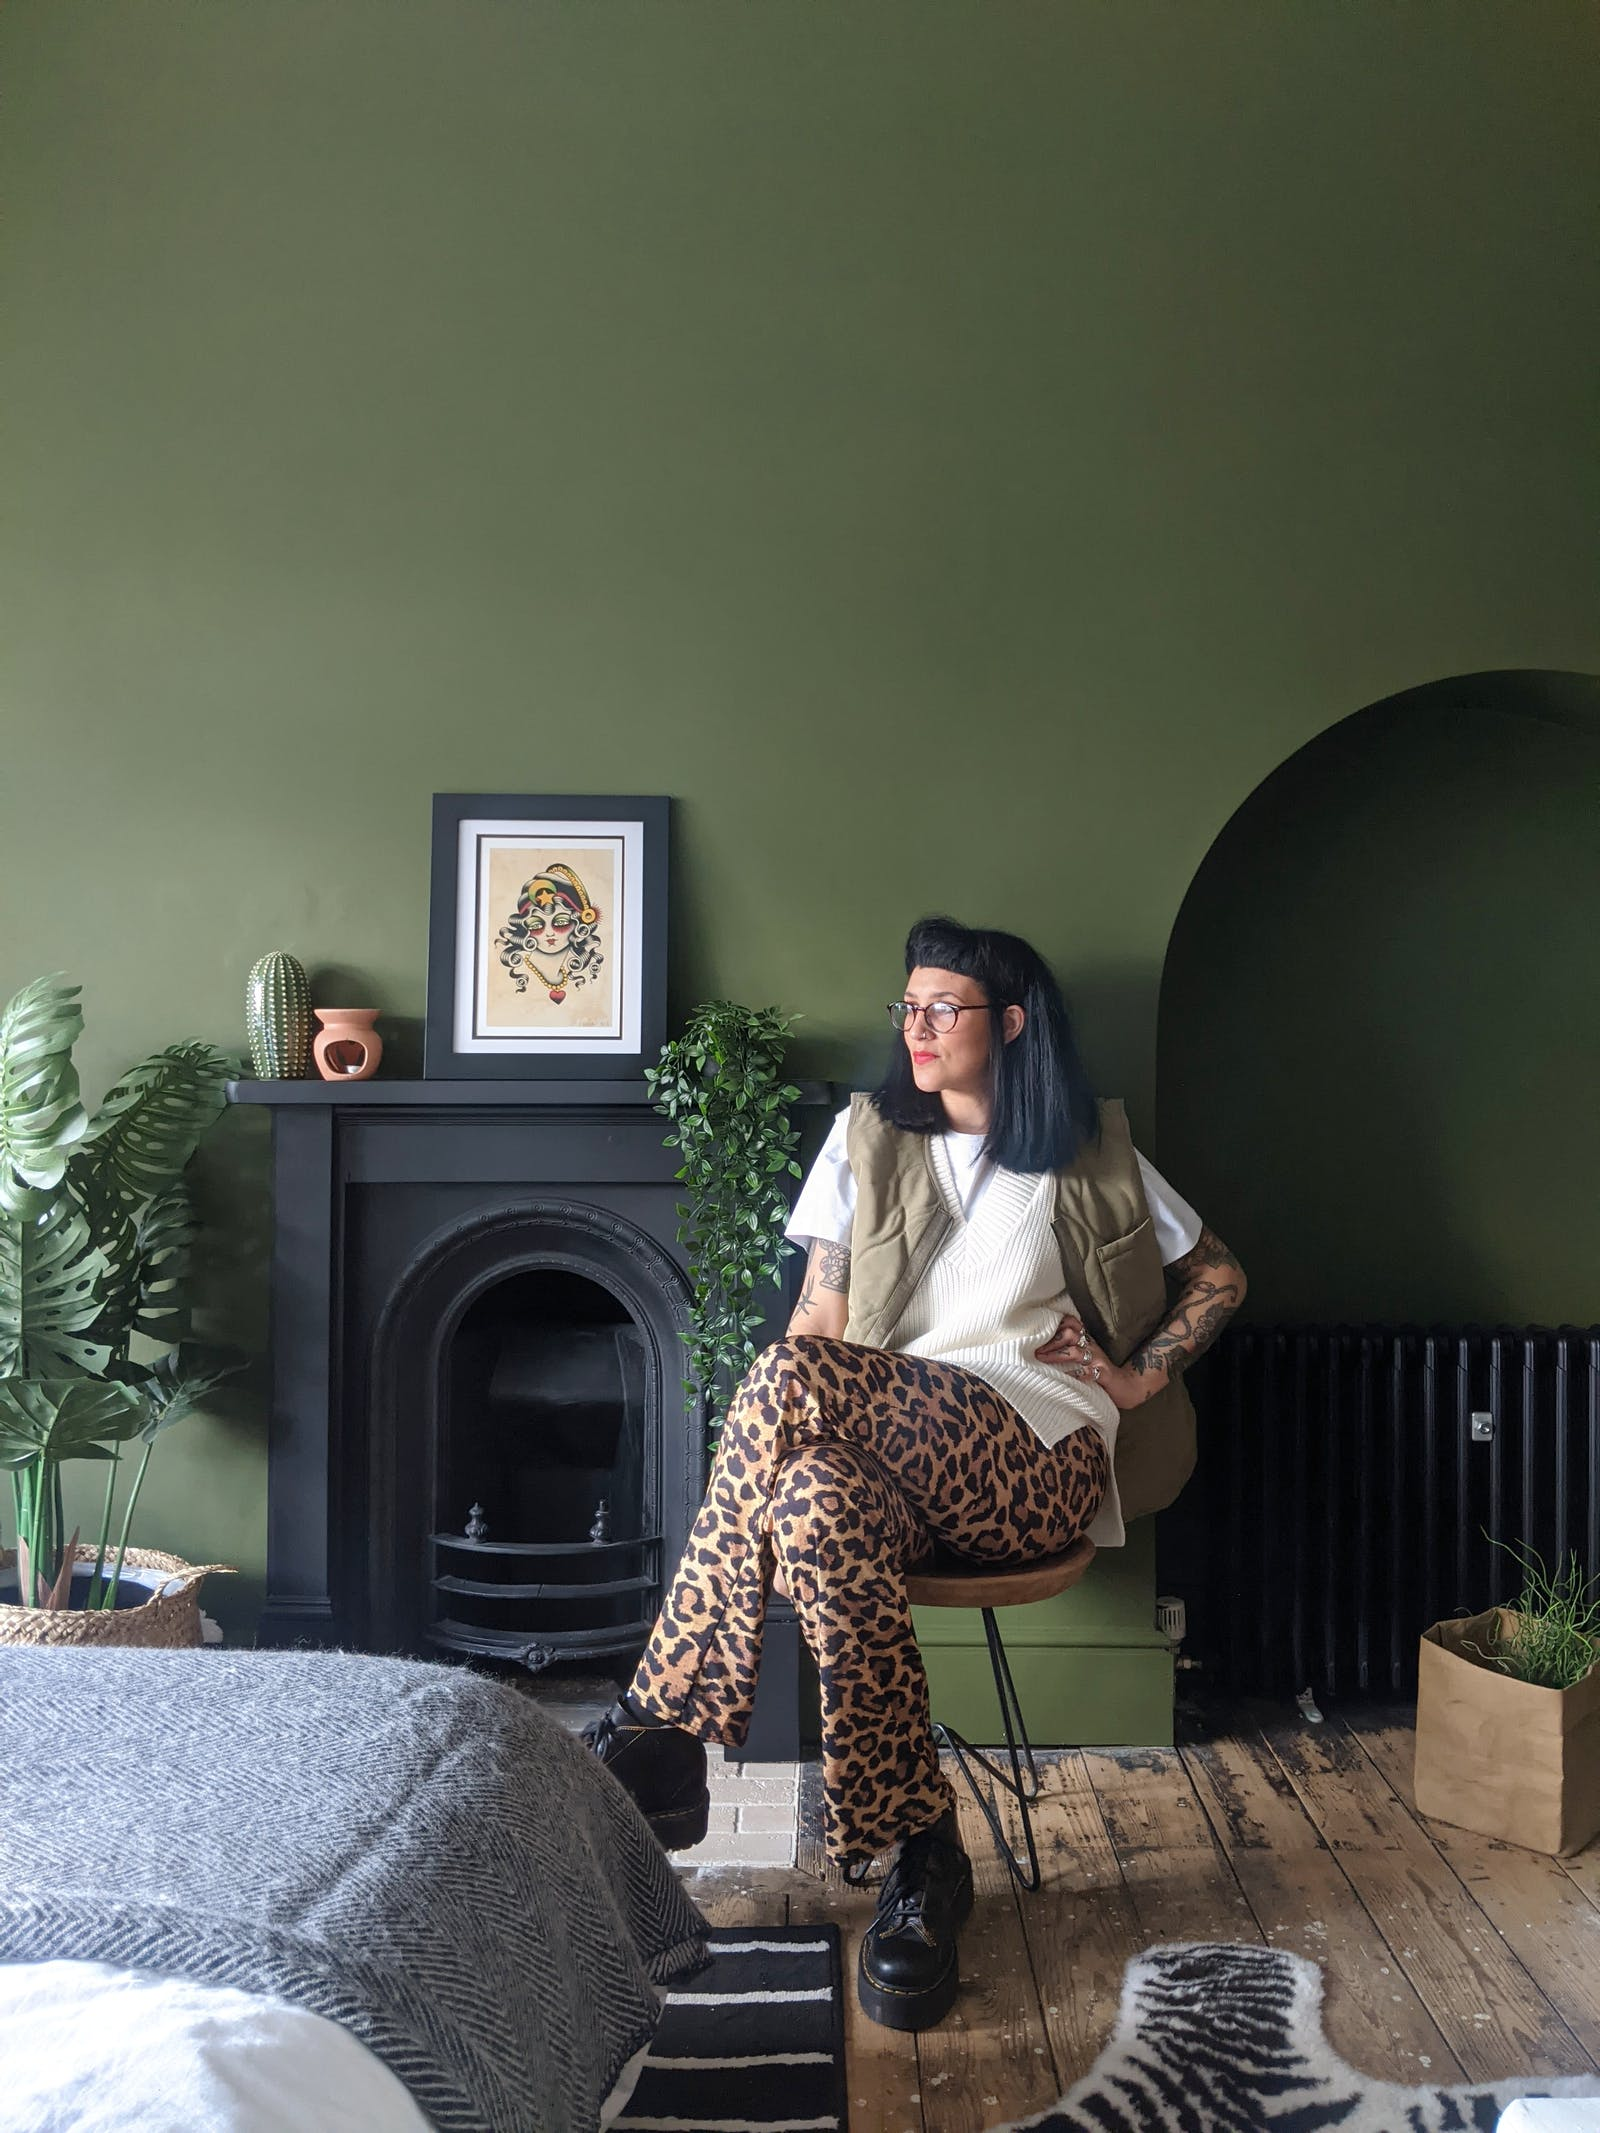 Woman sitting on a chair next to a fireplace and wall painted in Lick Green 05